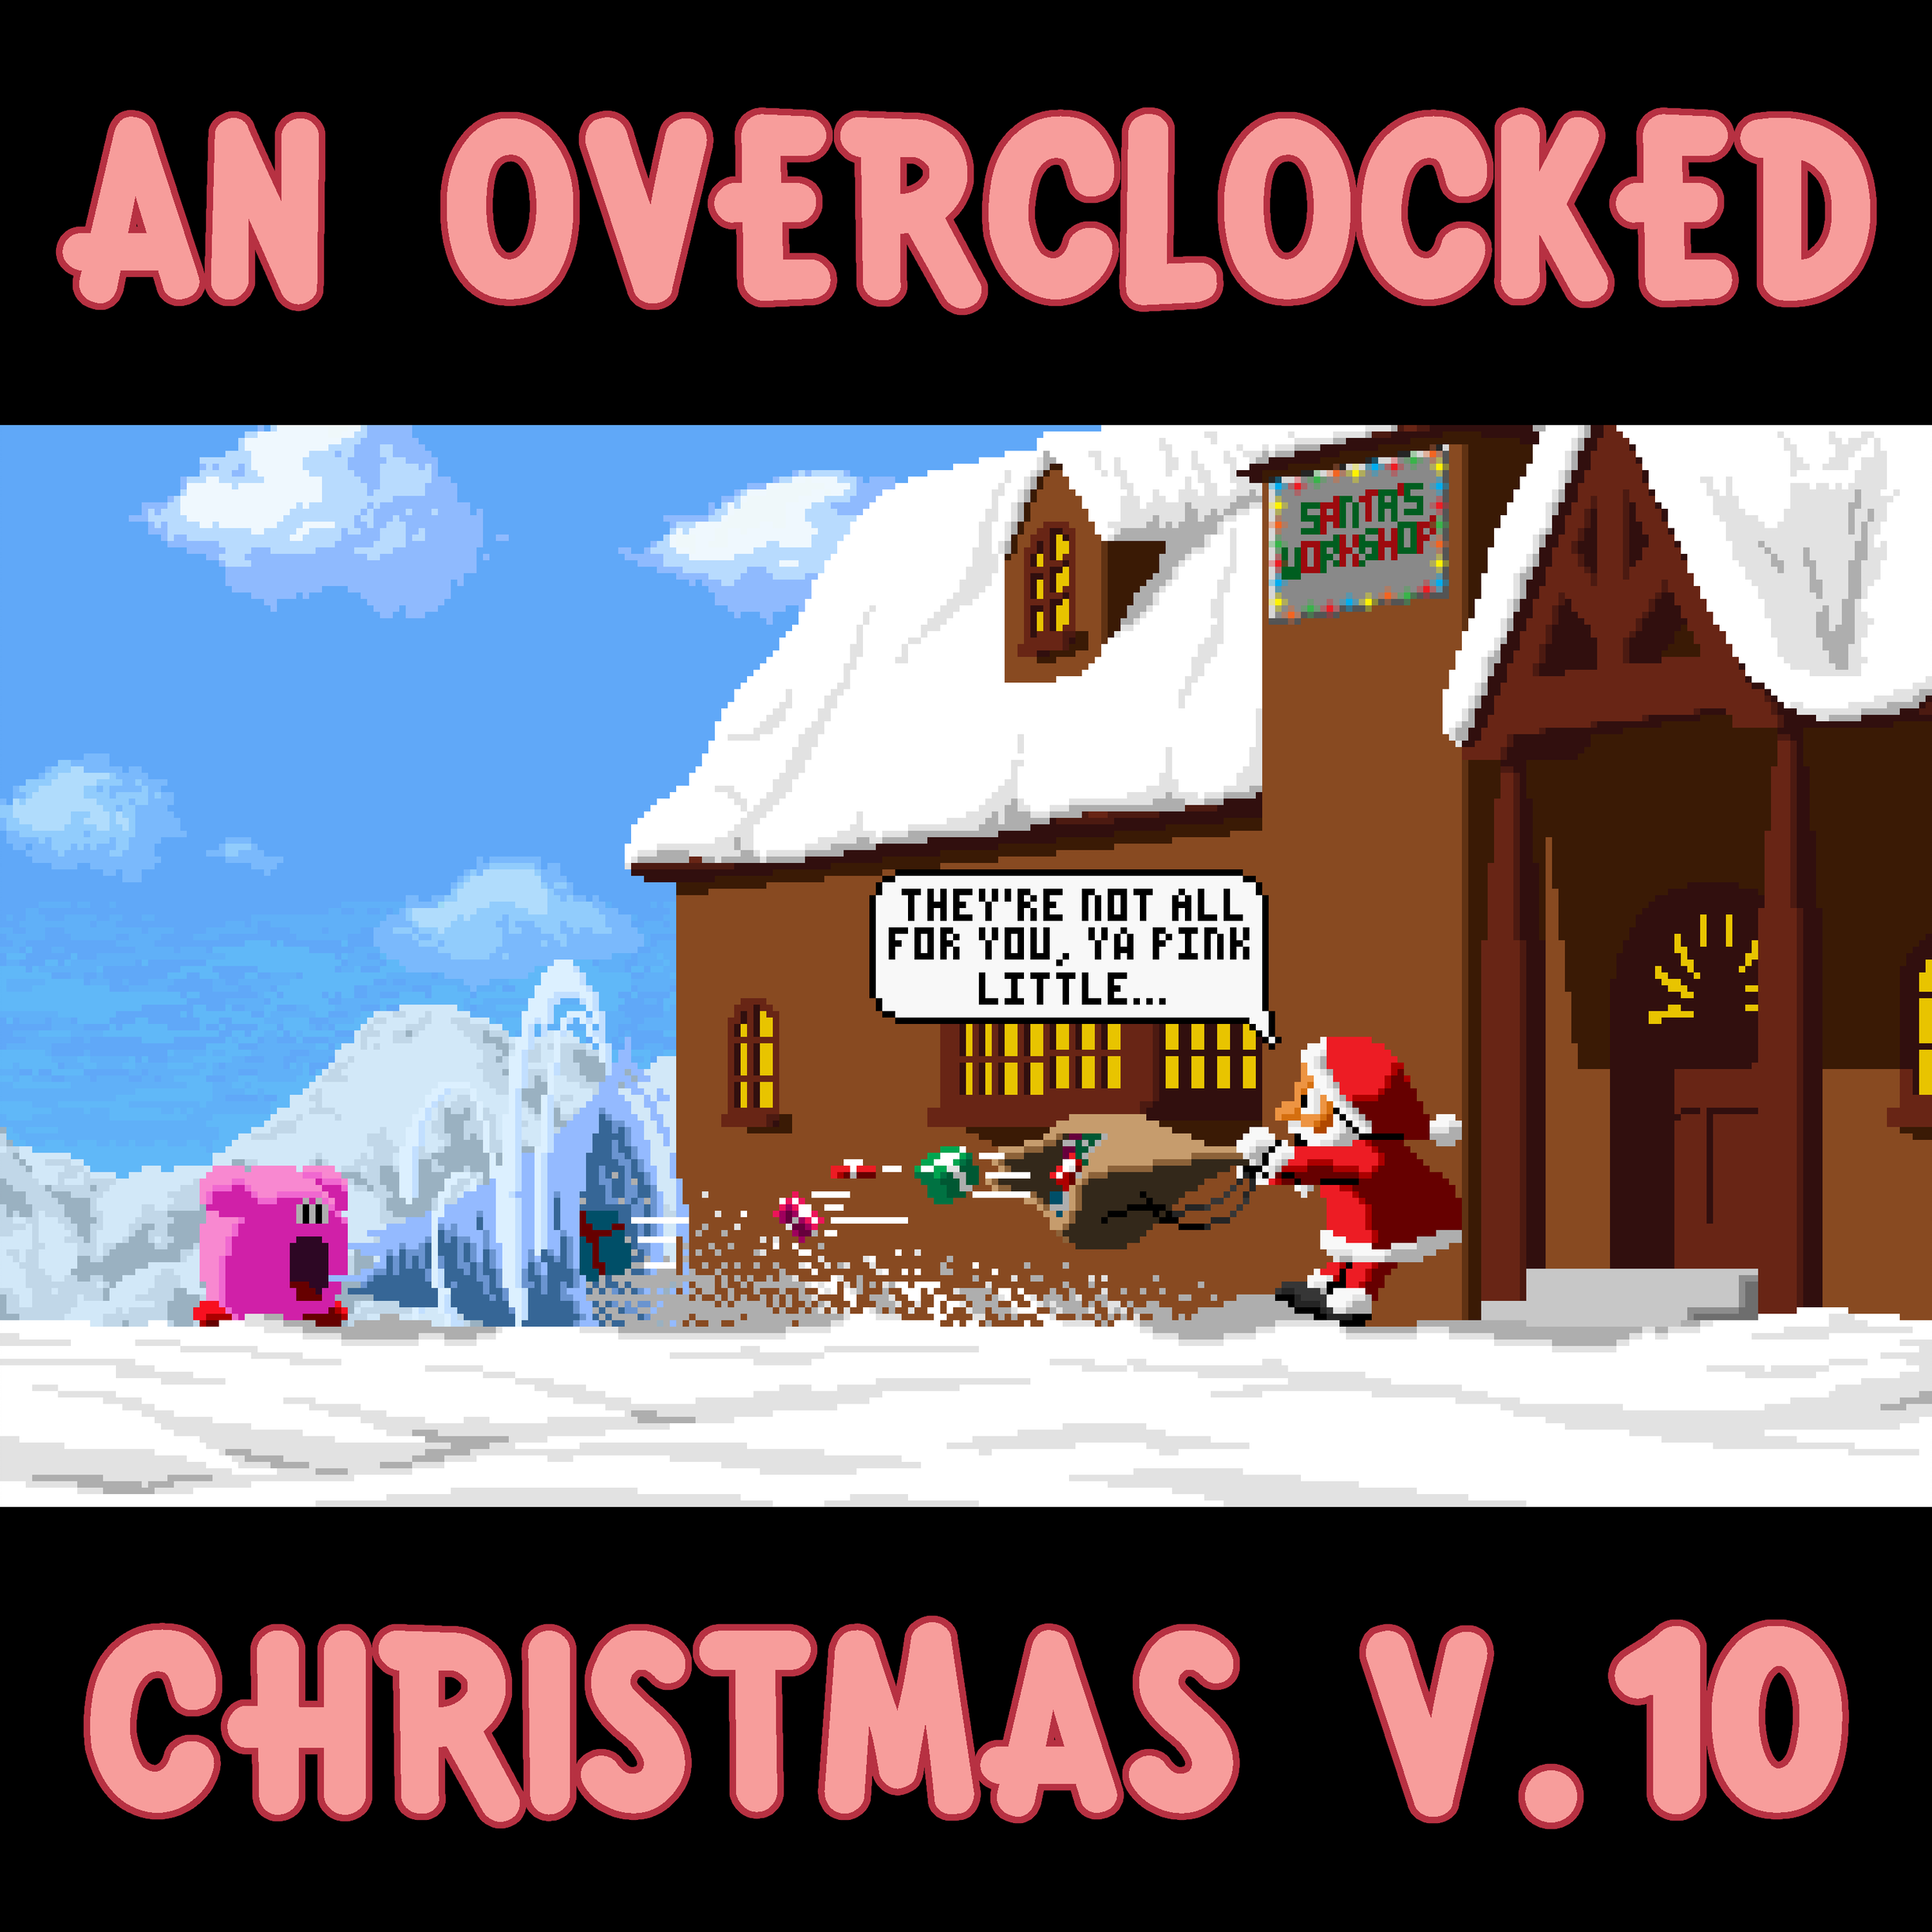 An OverClocked Christmas v.10 cover by The-Coop